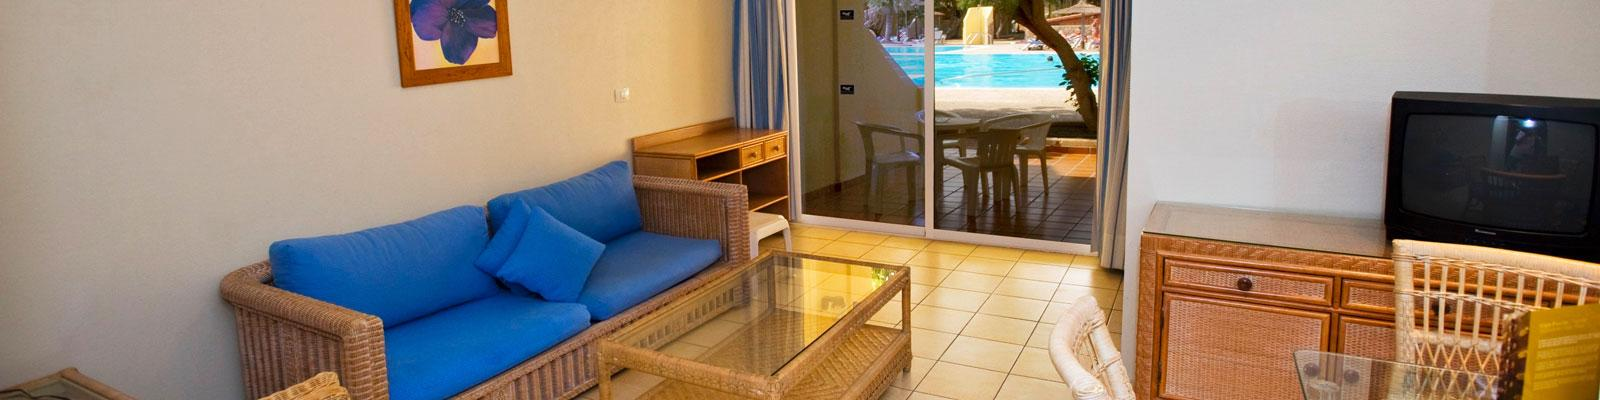 Bristol Playa - Self catering apartments in Corralejo